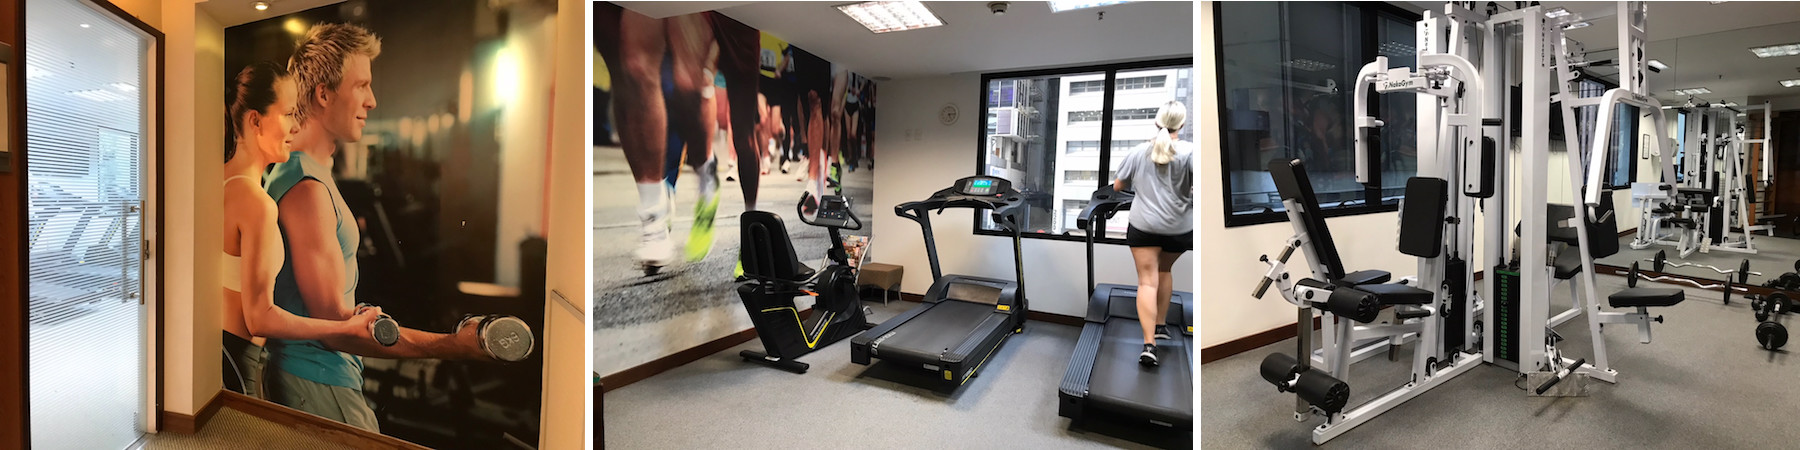 melia paulista fitness center